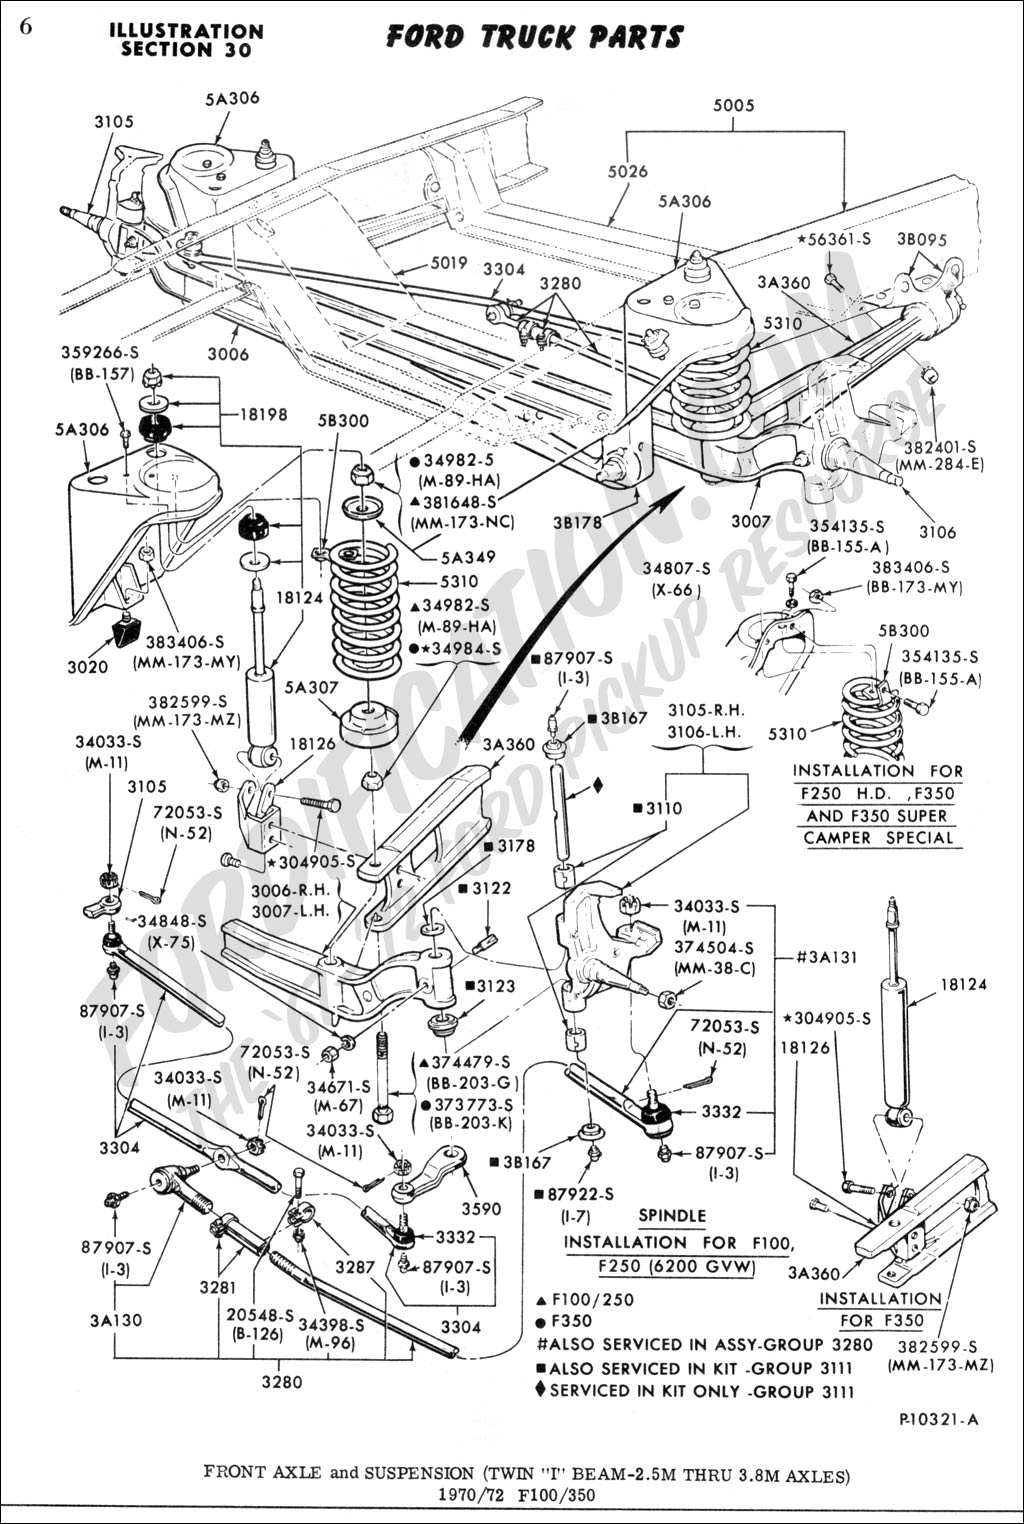 1996 ford f 250 4x4 front axle diagram